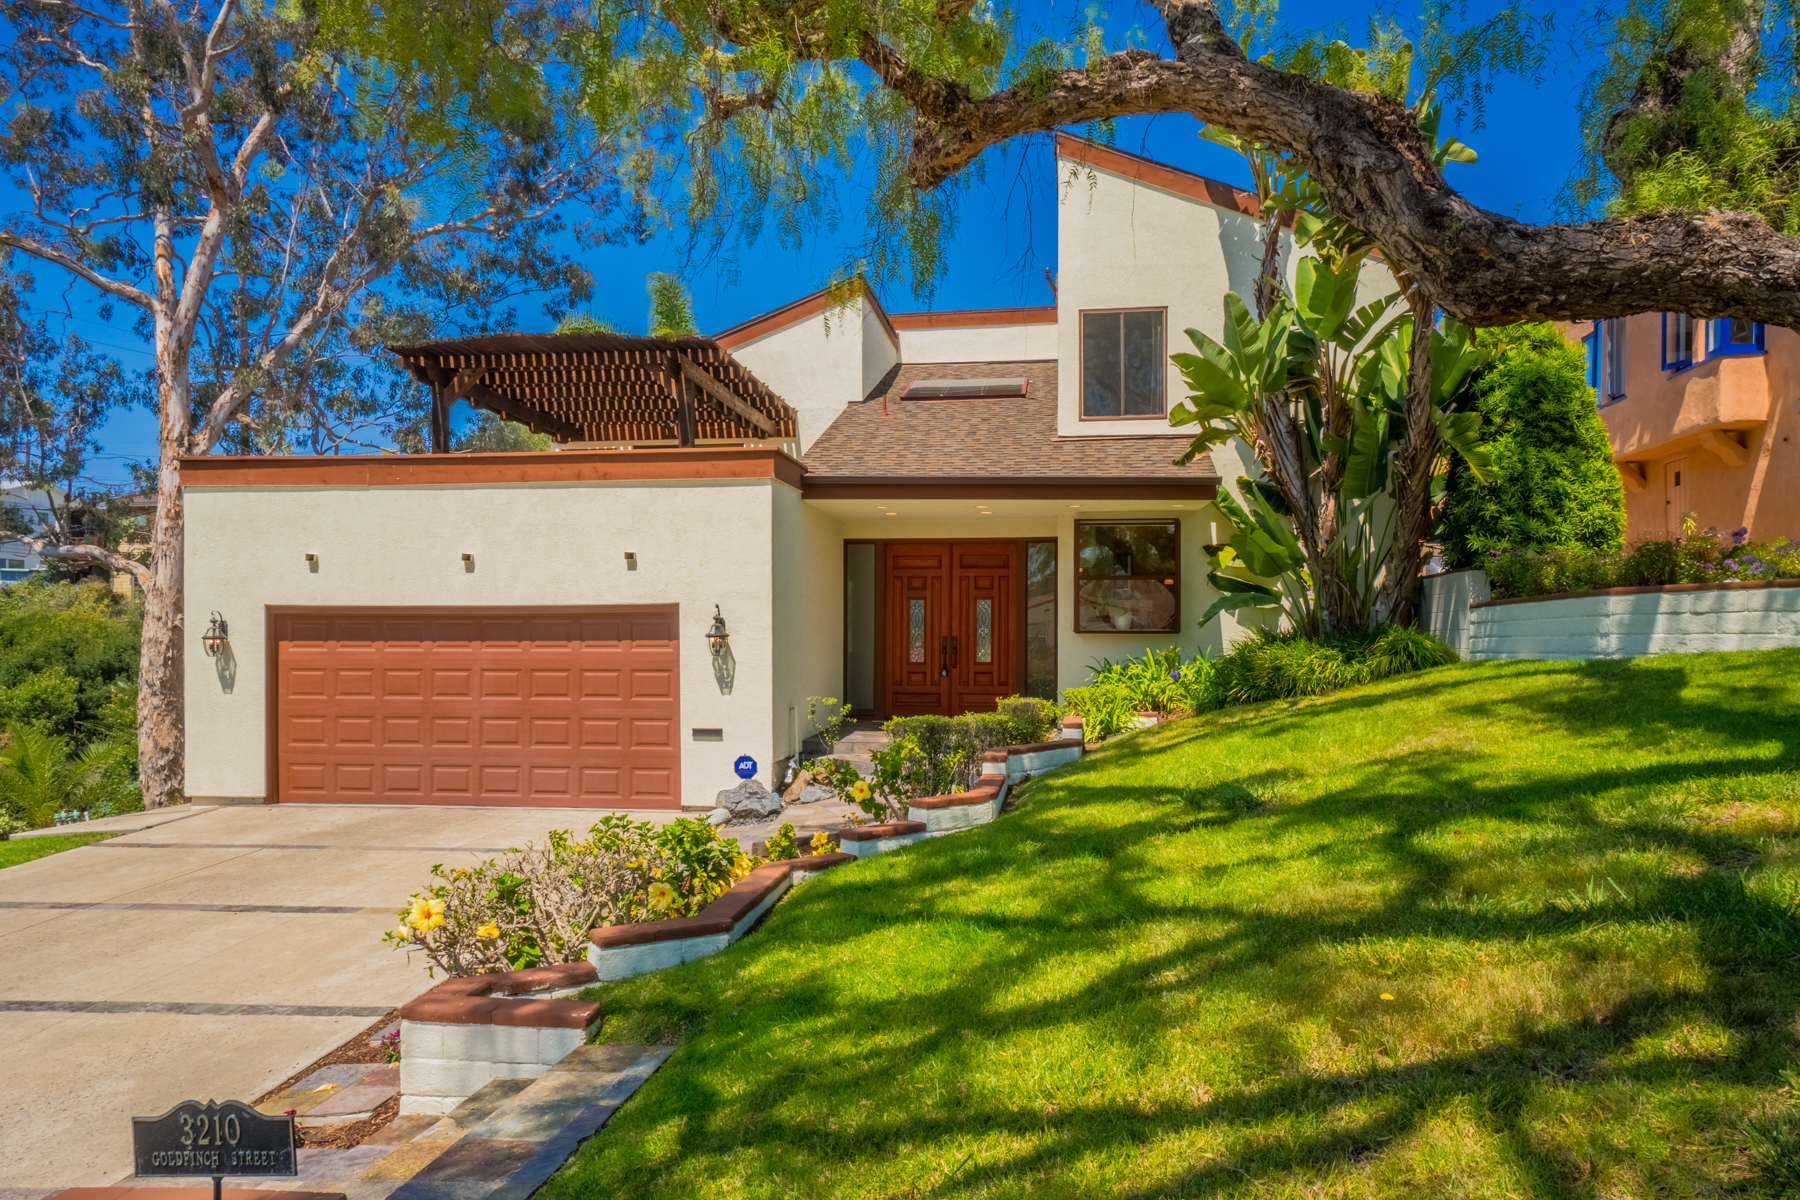 Single Family Home for Sale at 3210 Goldfinch Street Mission Hills, San Diego, California, 92103 United States